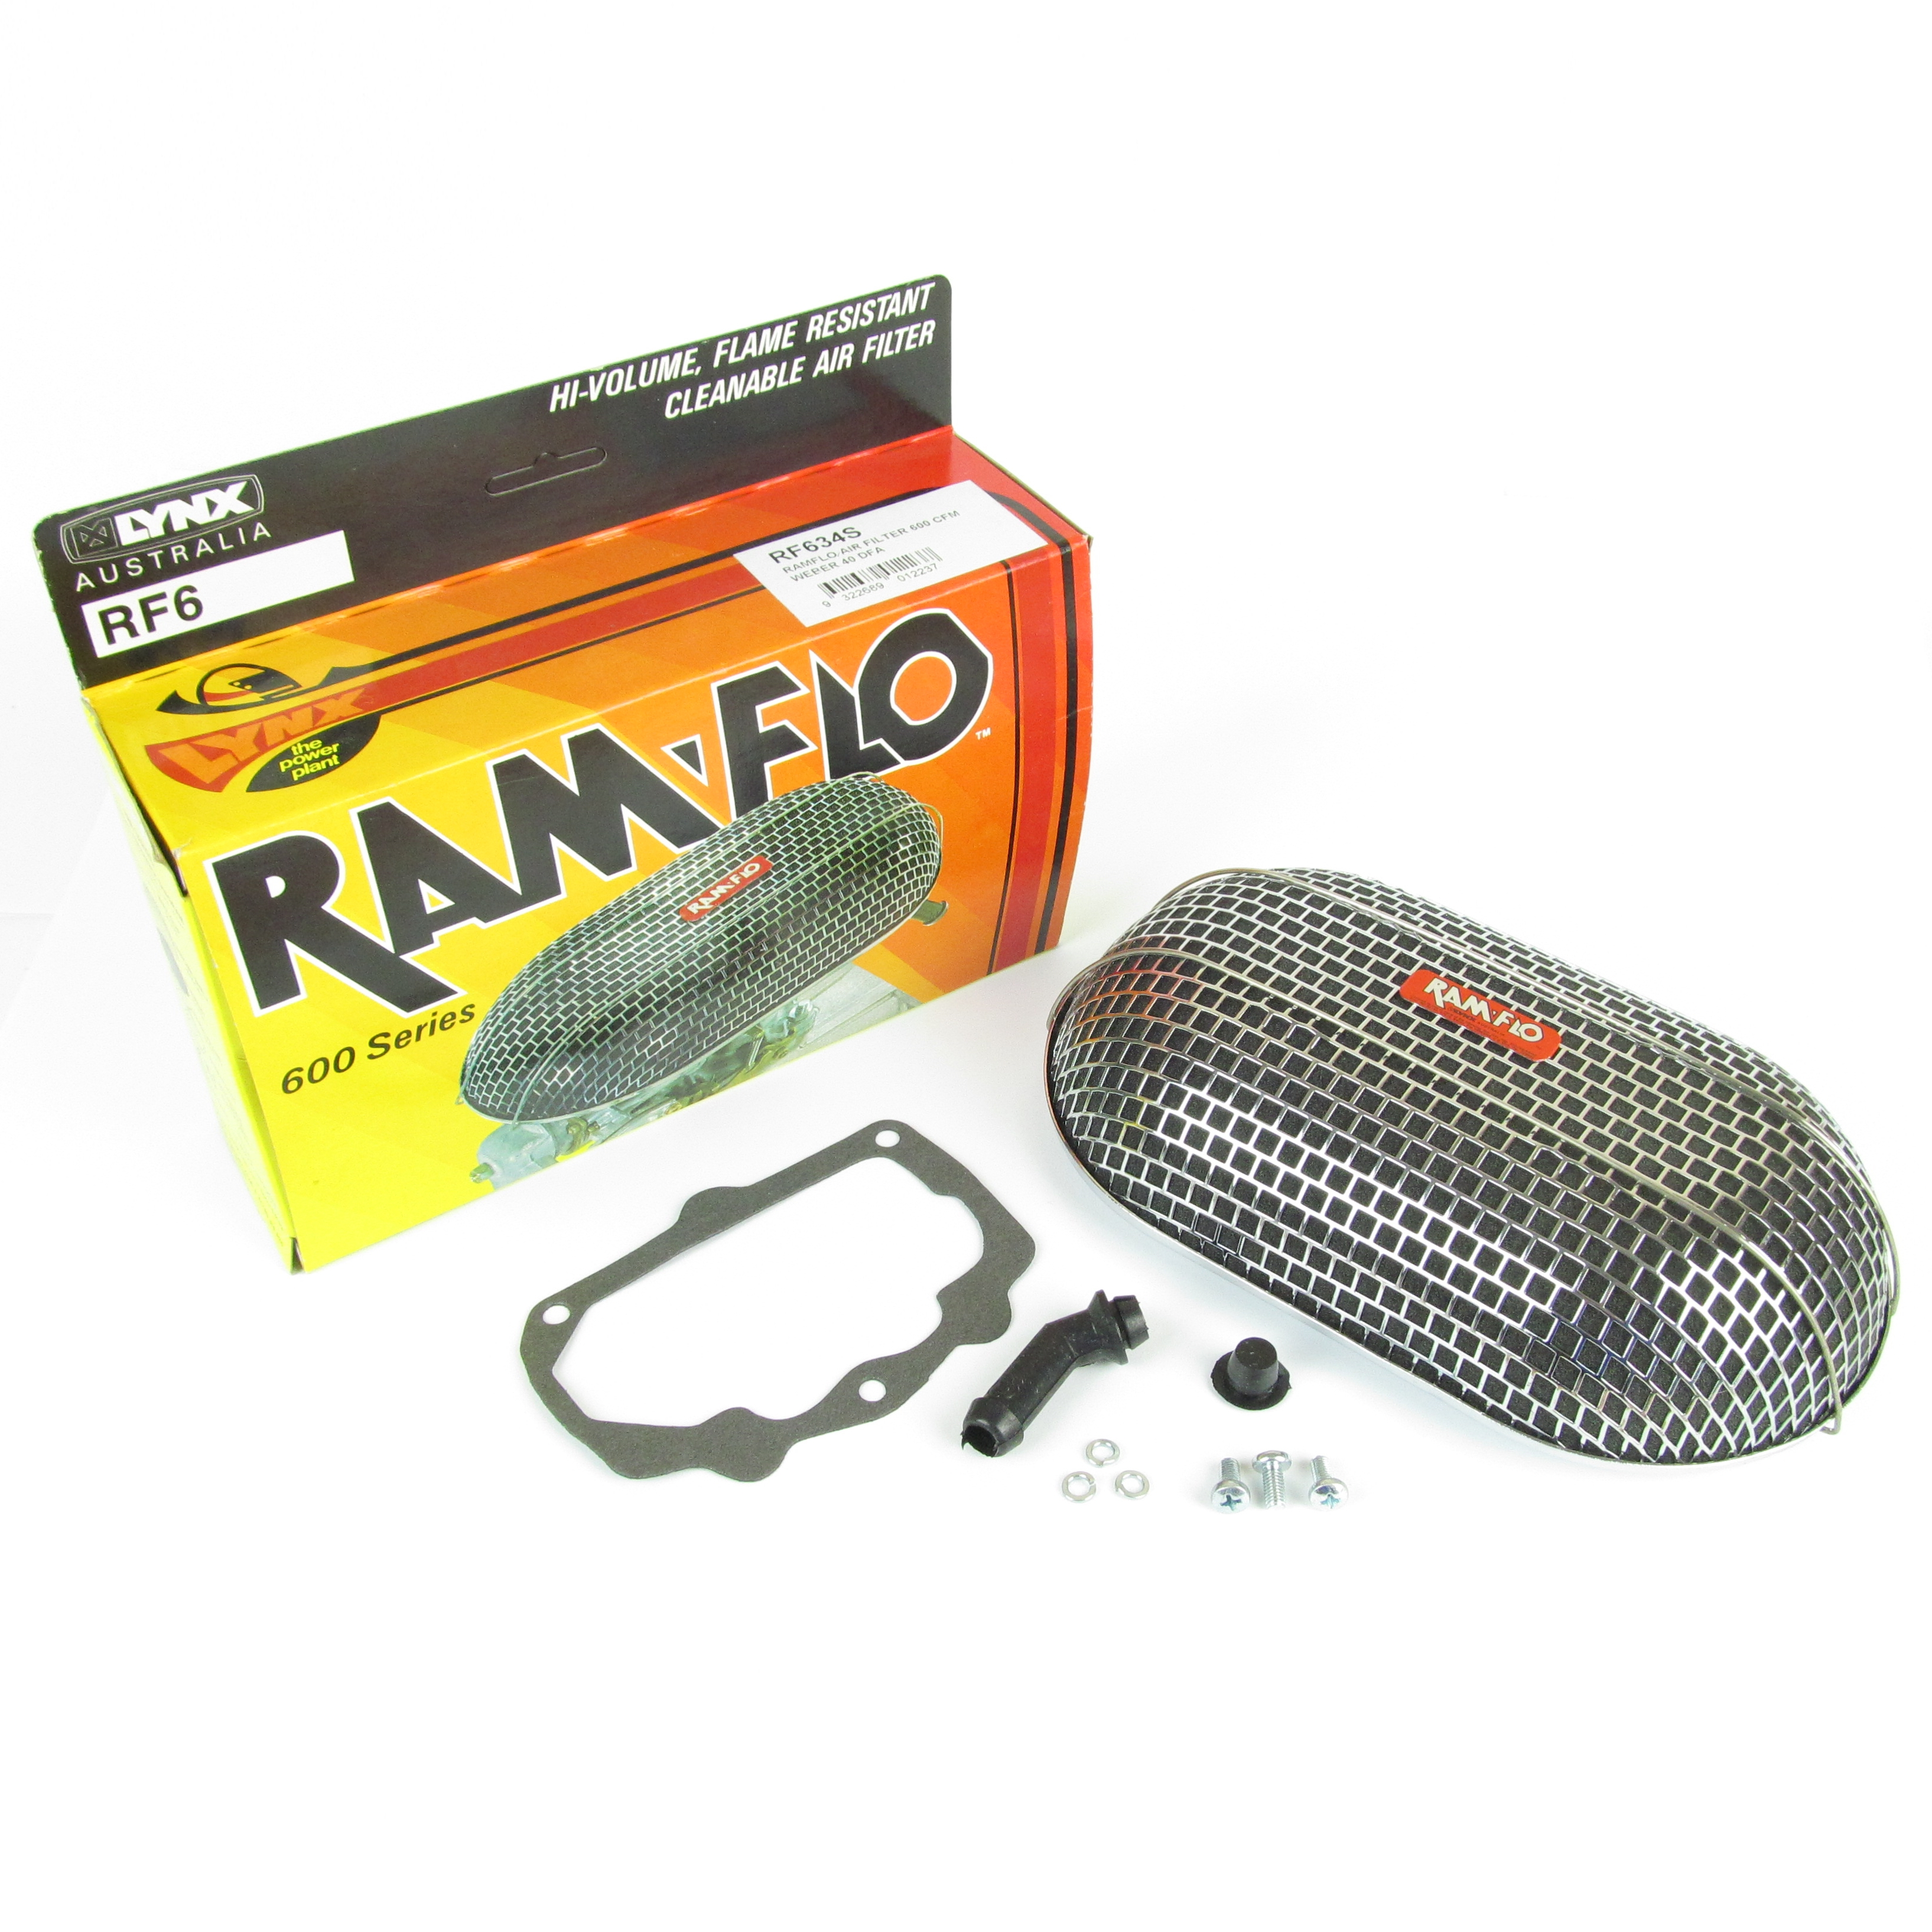 LYNX RAMFLO AIR FILTER KIT WEBER 40 DFAV CARB CLASSIC FORD V6 ENGINE ETC